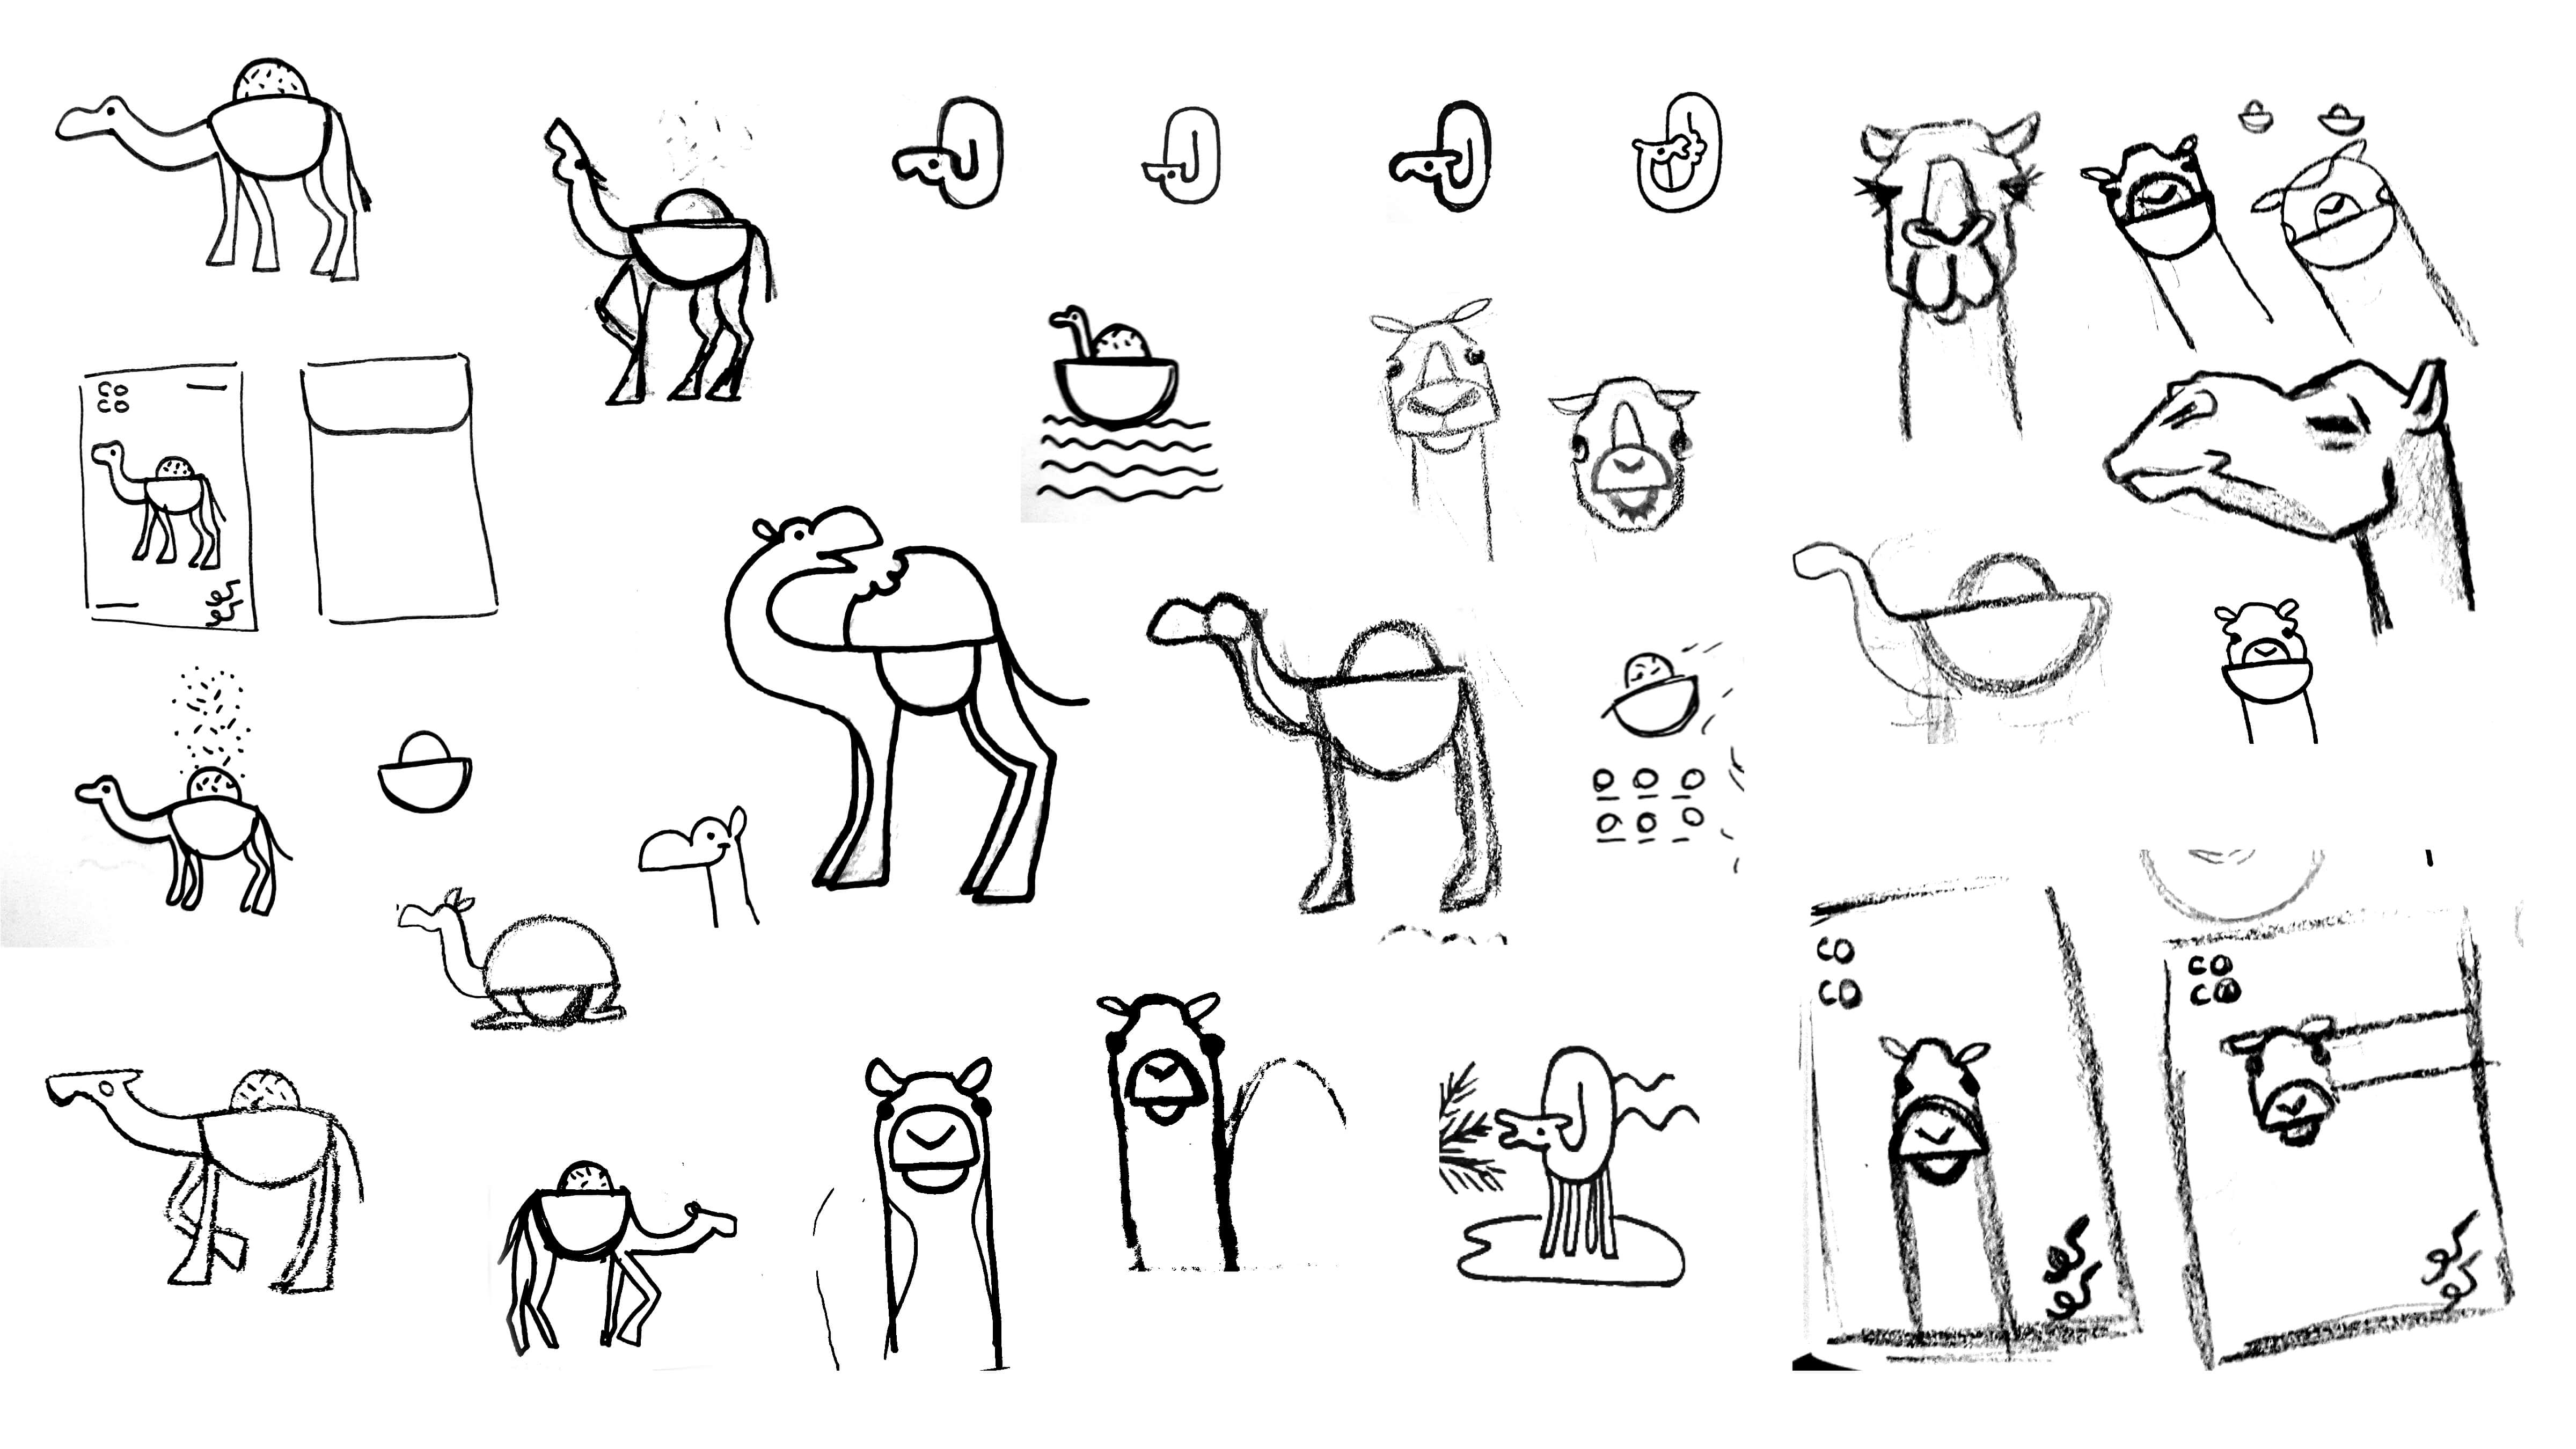 CoCoCamel_Sketches_Nov28-8